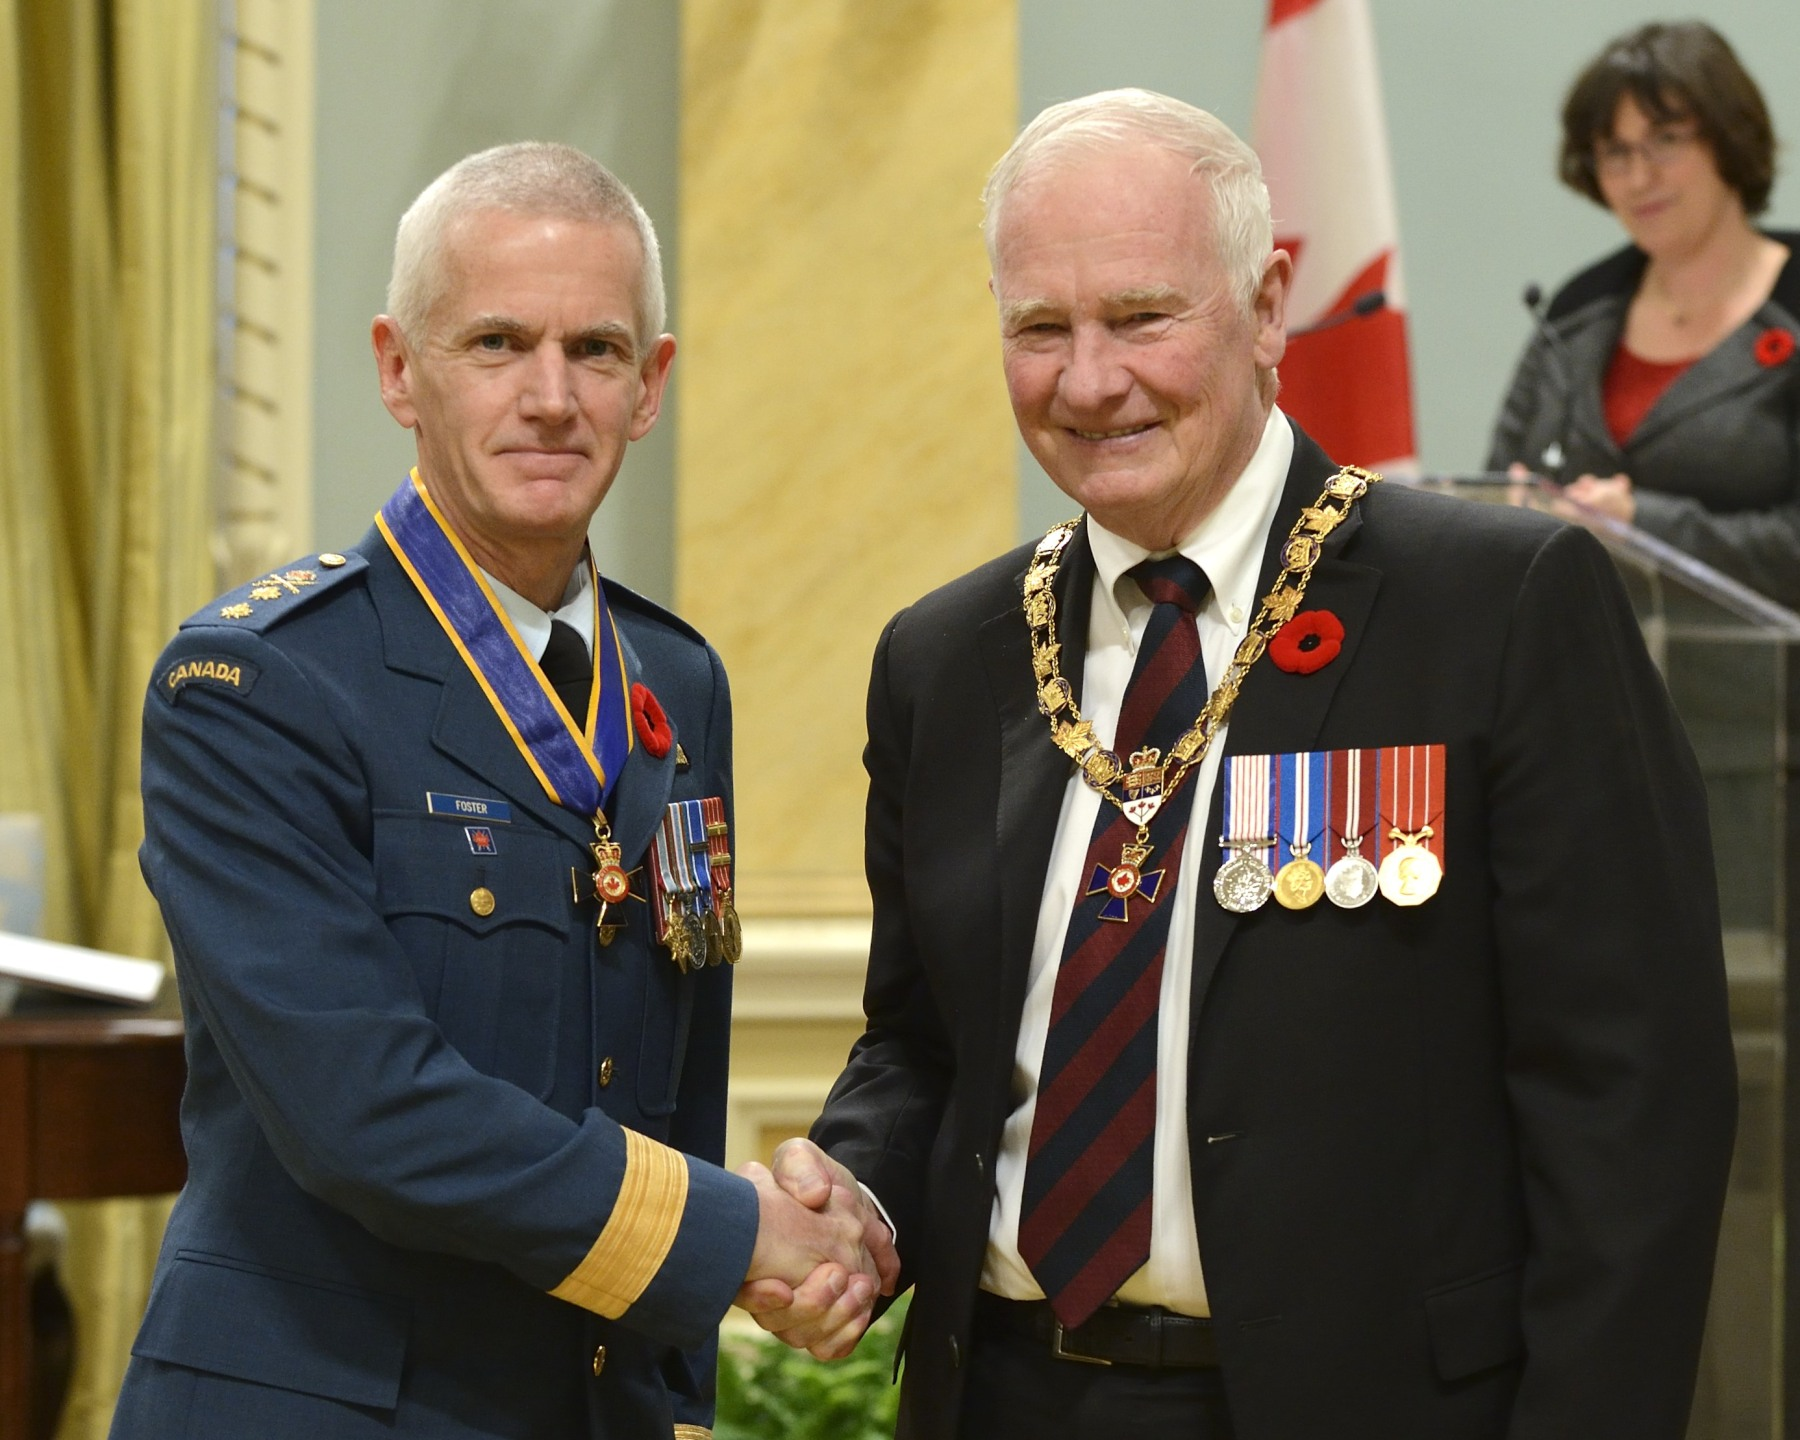 His Excellency presented the Order of Military Merit at the Commander level (C.M.M.) to Major-General Richard Foster, C.M.M., C.D., Office of the Chief of the Air Force Staff, Ottawa, Ontario.